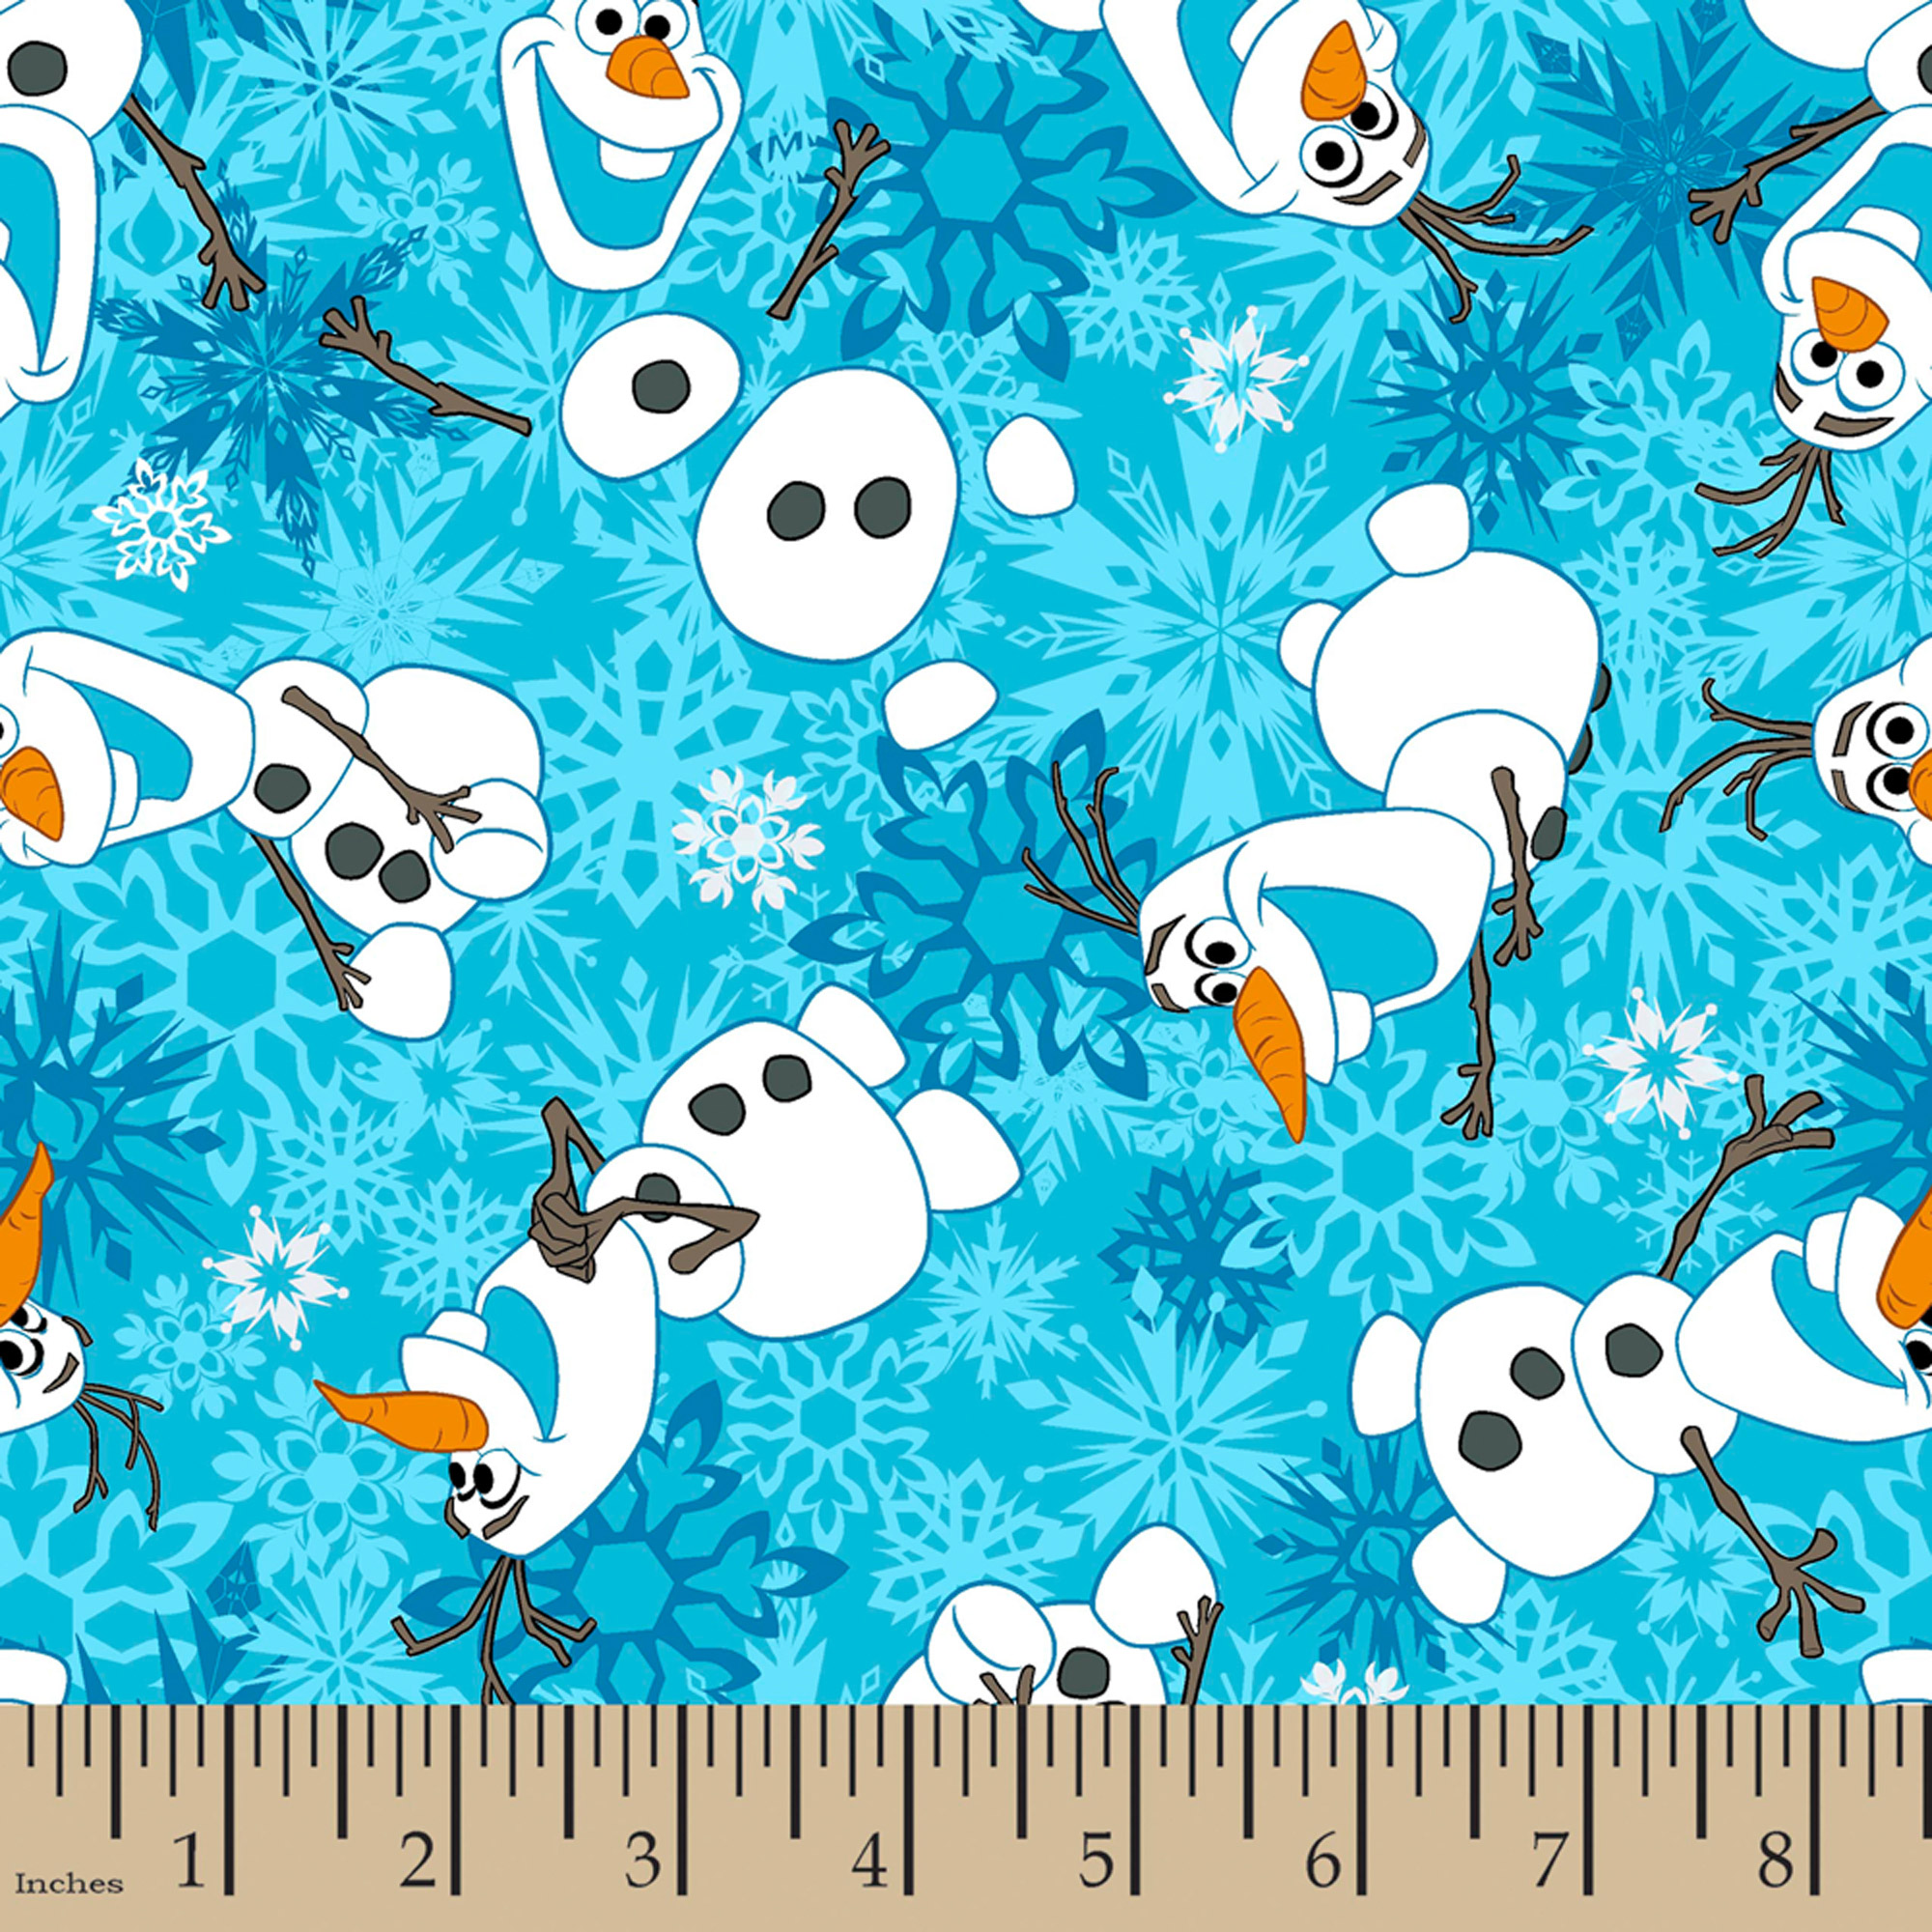 "Disney Frozen Olaf Winter Snowflakes, Flannel, Blue, 42/43"" Wide, Fabric By The Yard"